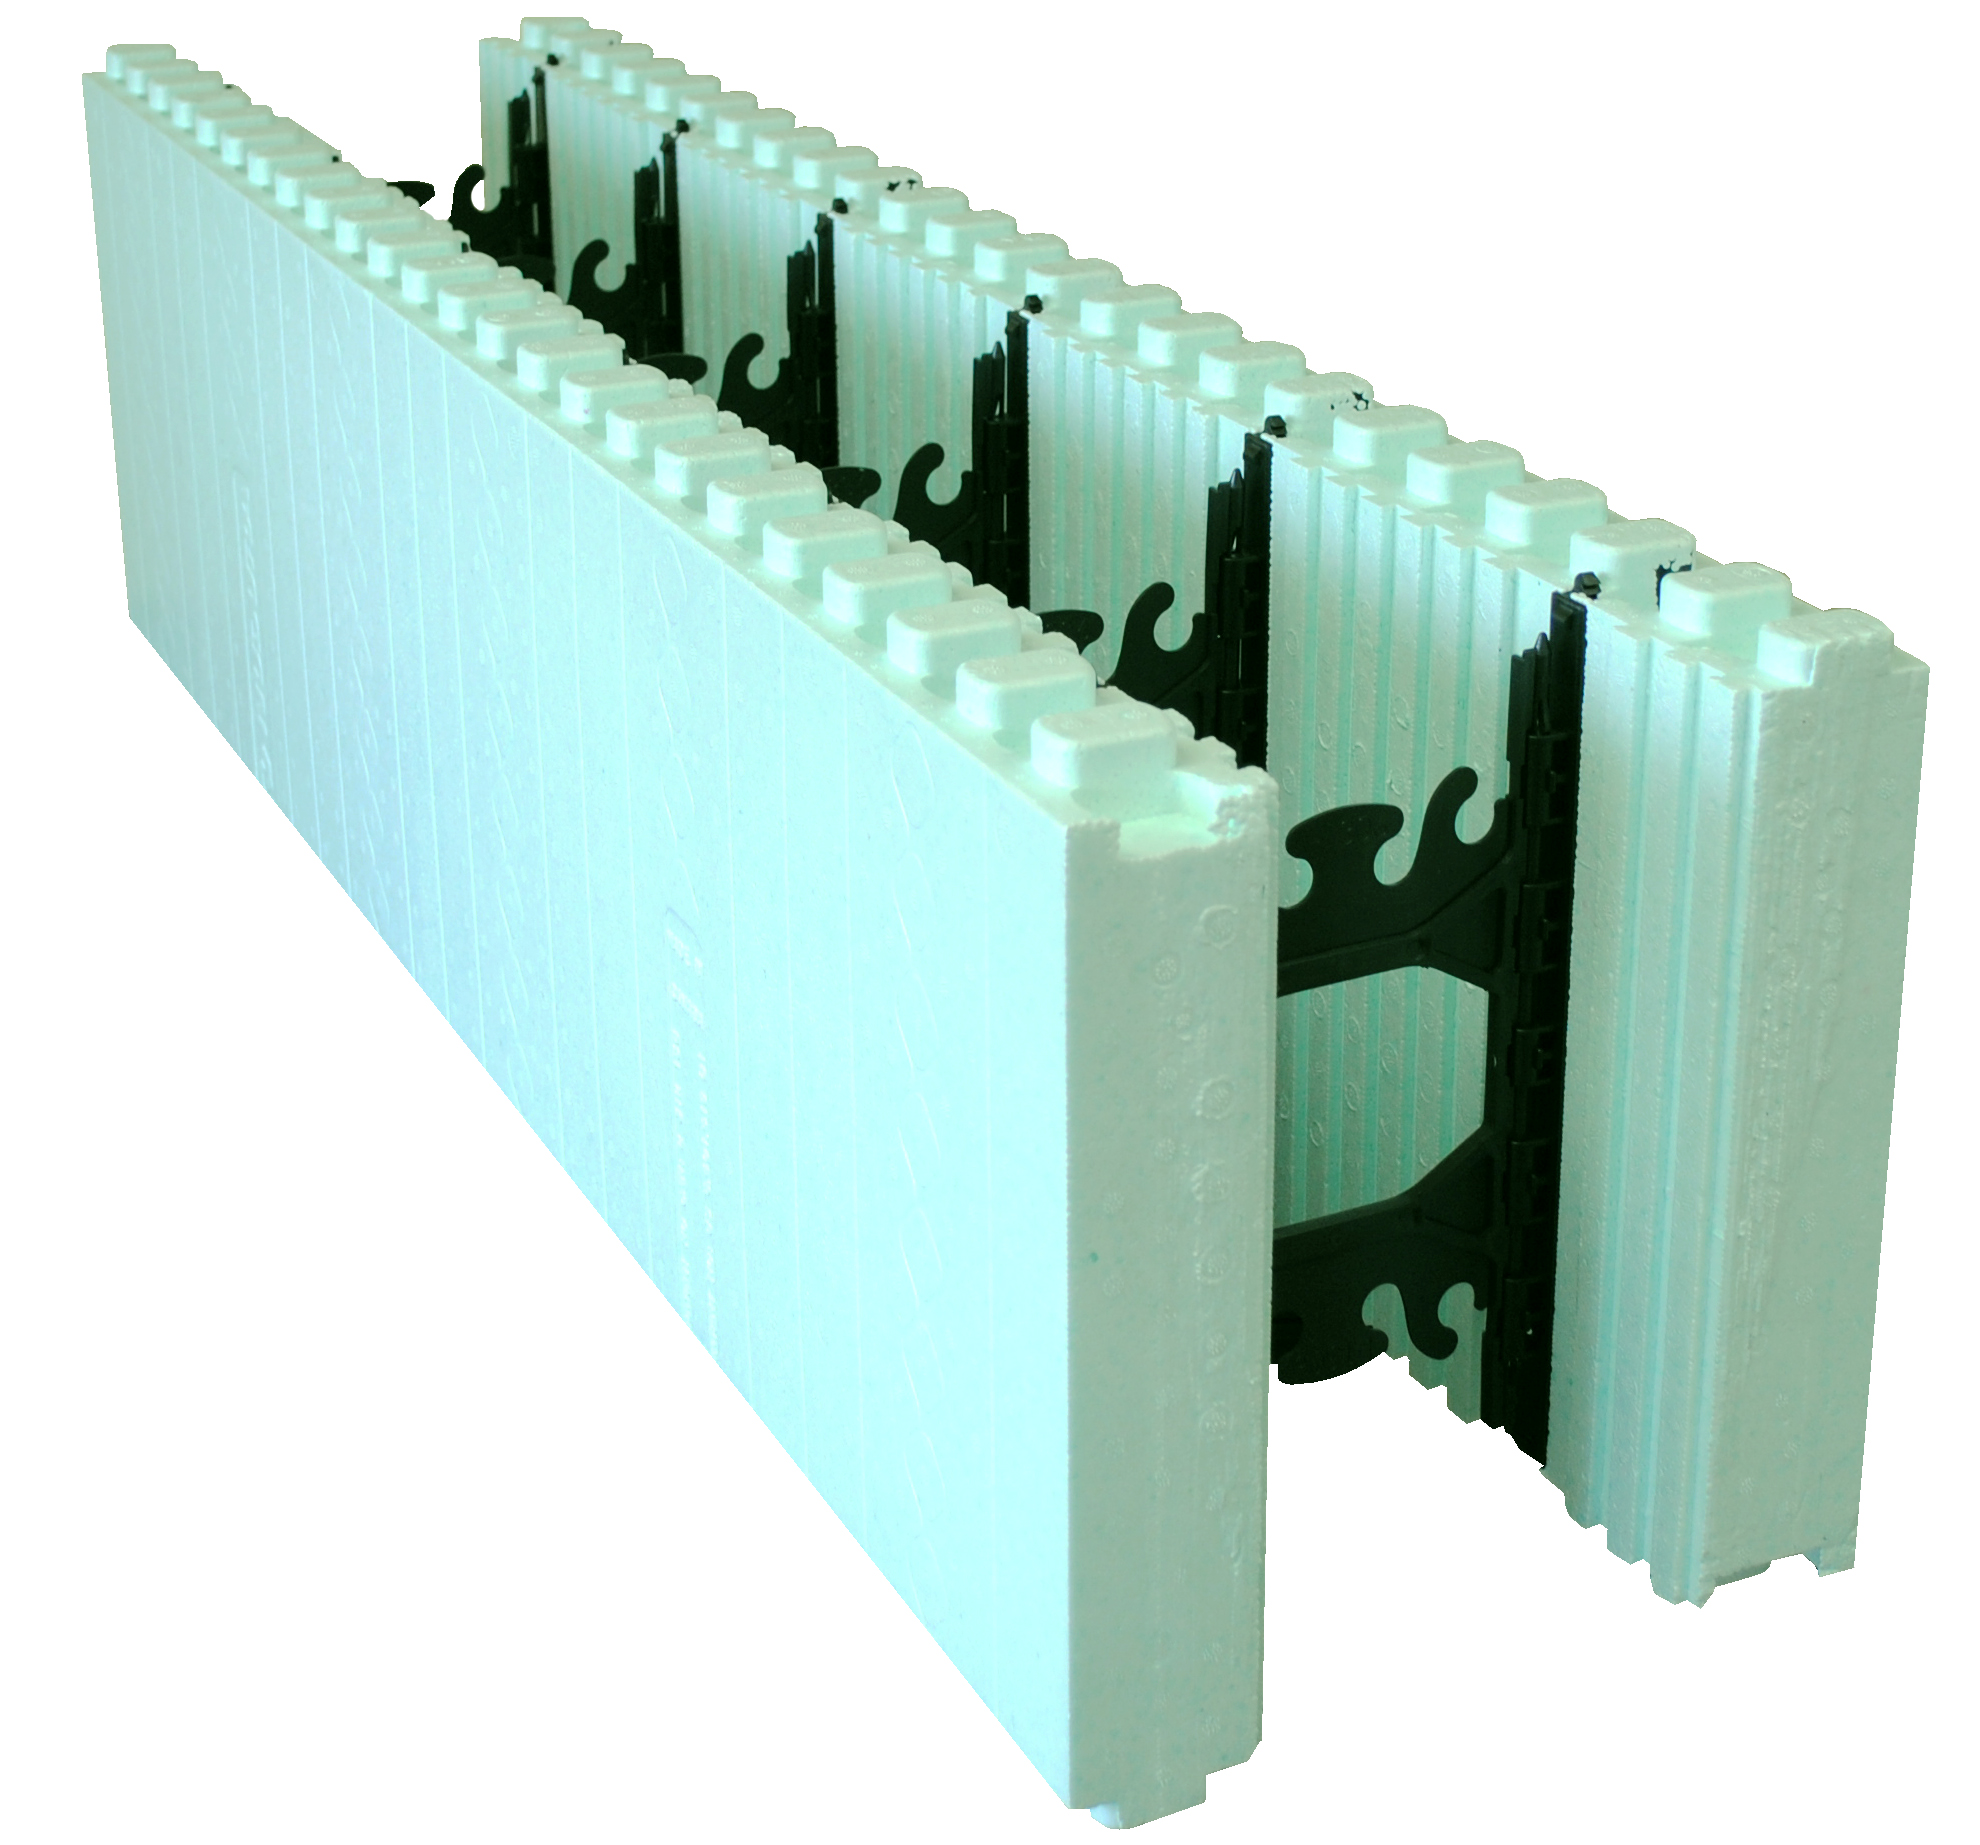 nudura icf series concrete construction magazine